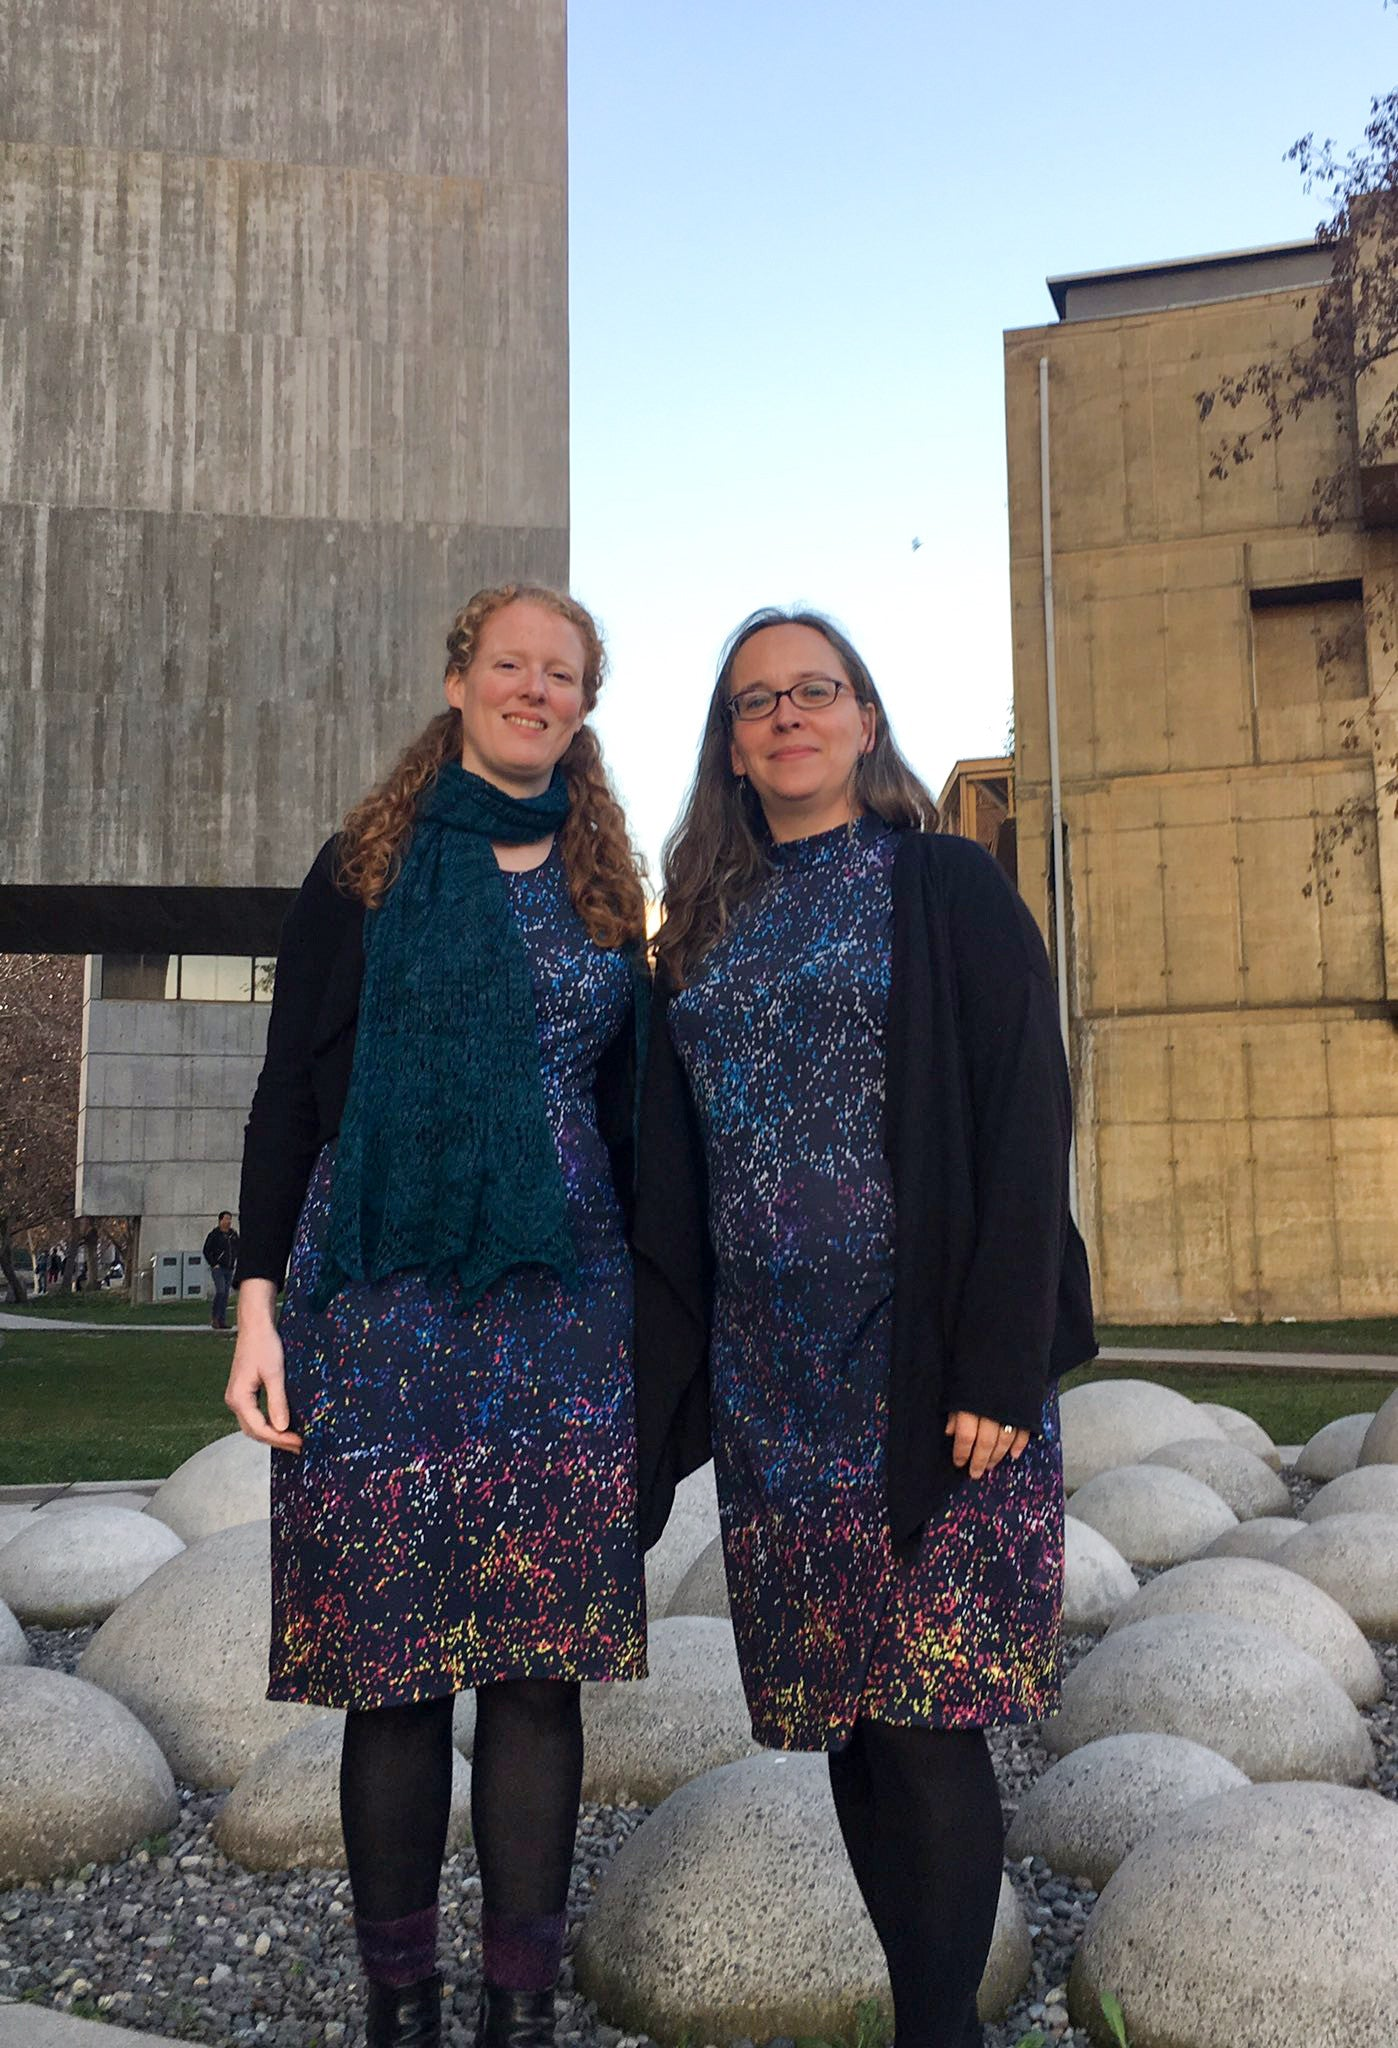 Data Coordinator Dr. Anne-Marie Weijmans and Spokesperson Karen L Masters from the Sloan Digital Sky Survey